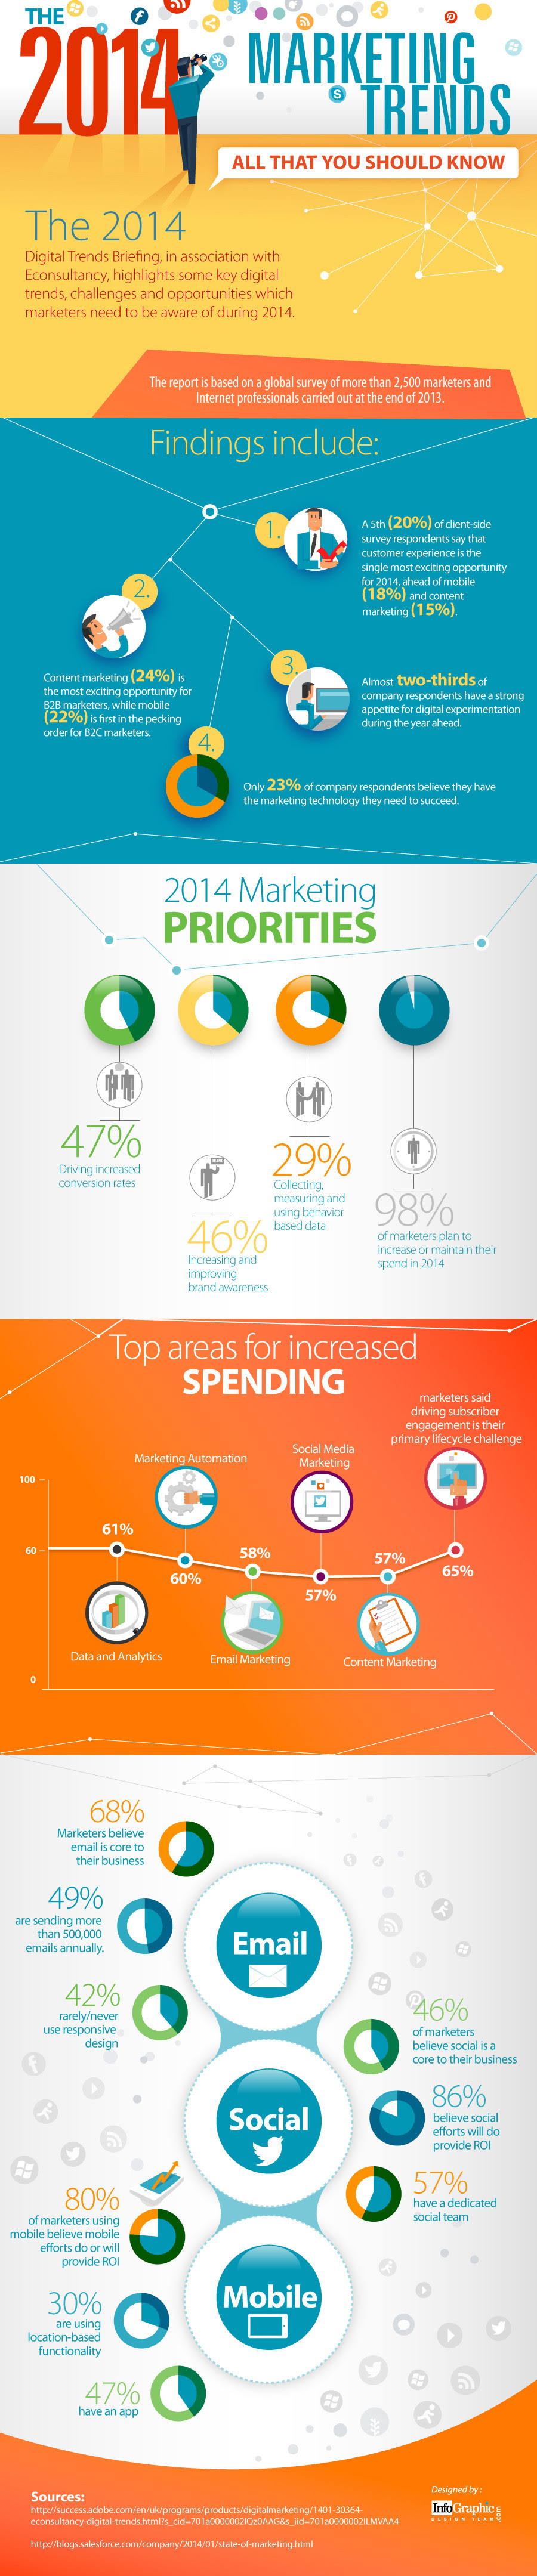 Infographic: The 2014 Marketing Trends - All That you Should Know